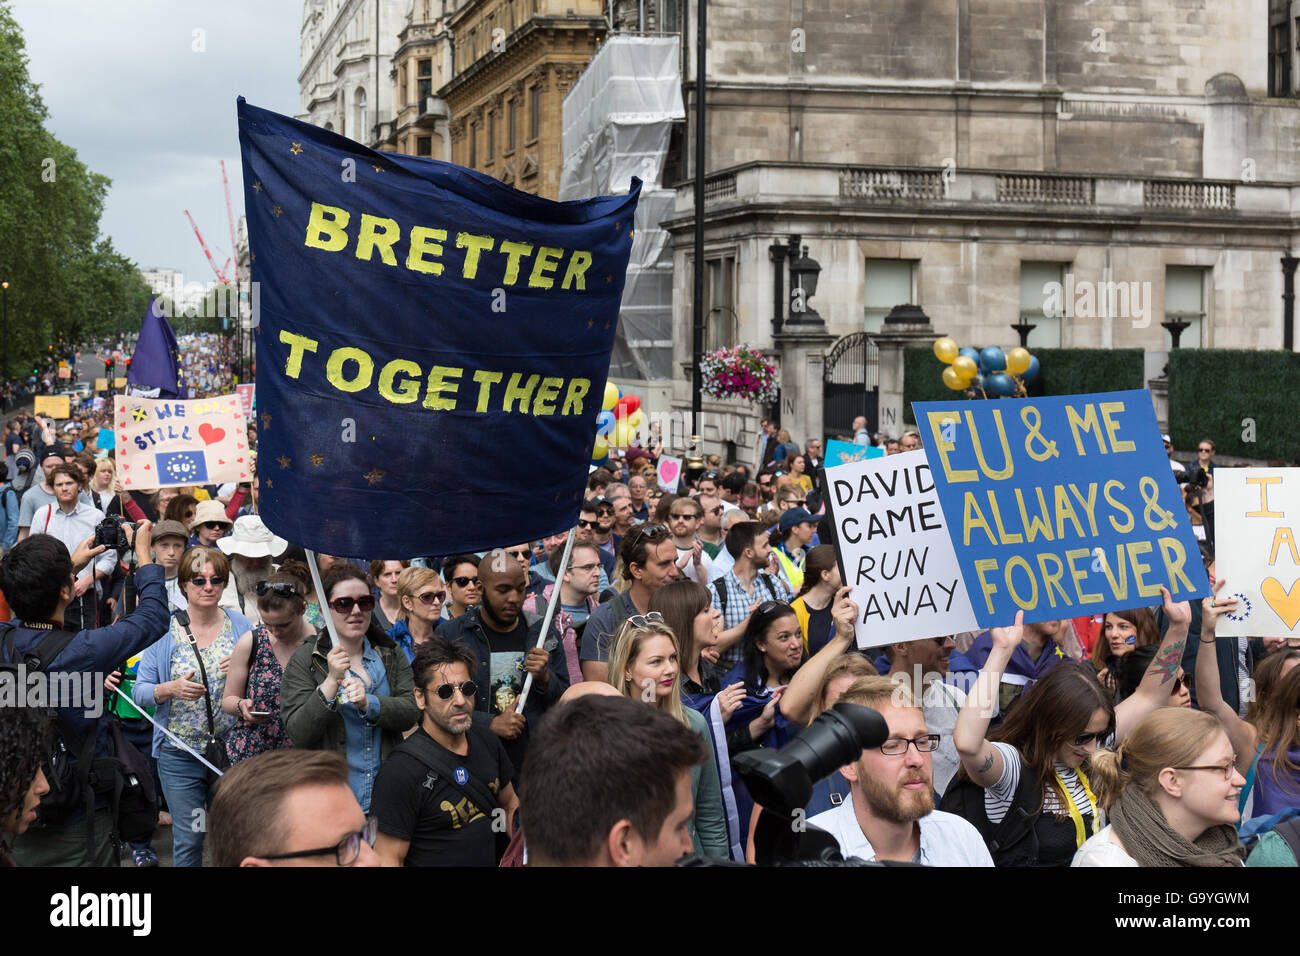 London, UK. 02nd July, 2016. Anti Brexit protest march in London, UK Credit:  London pix/Alamy Live News - Stock Image